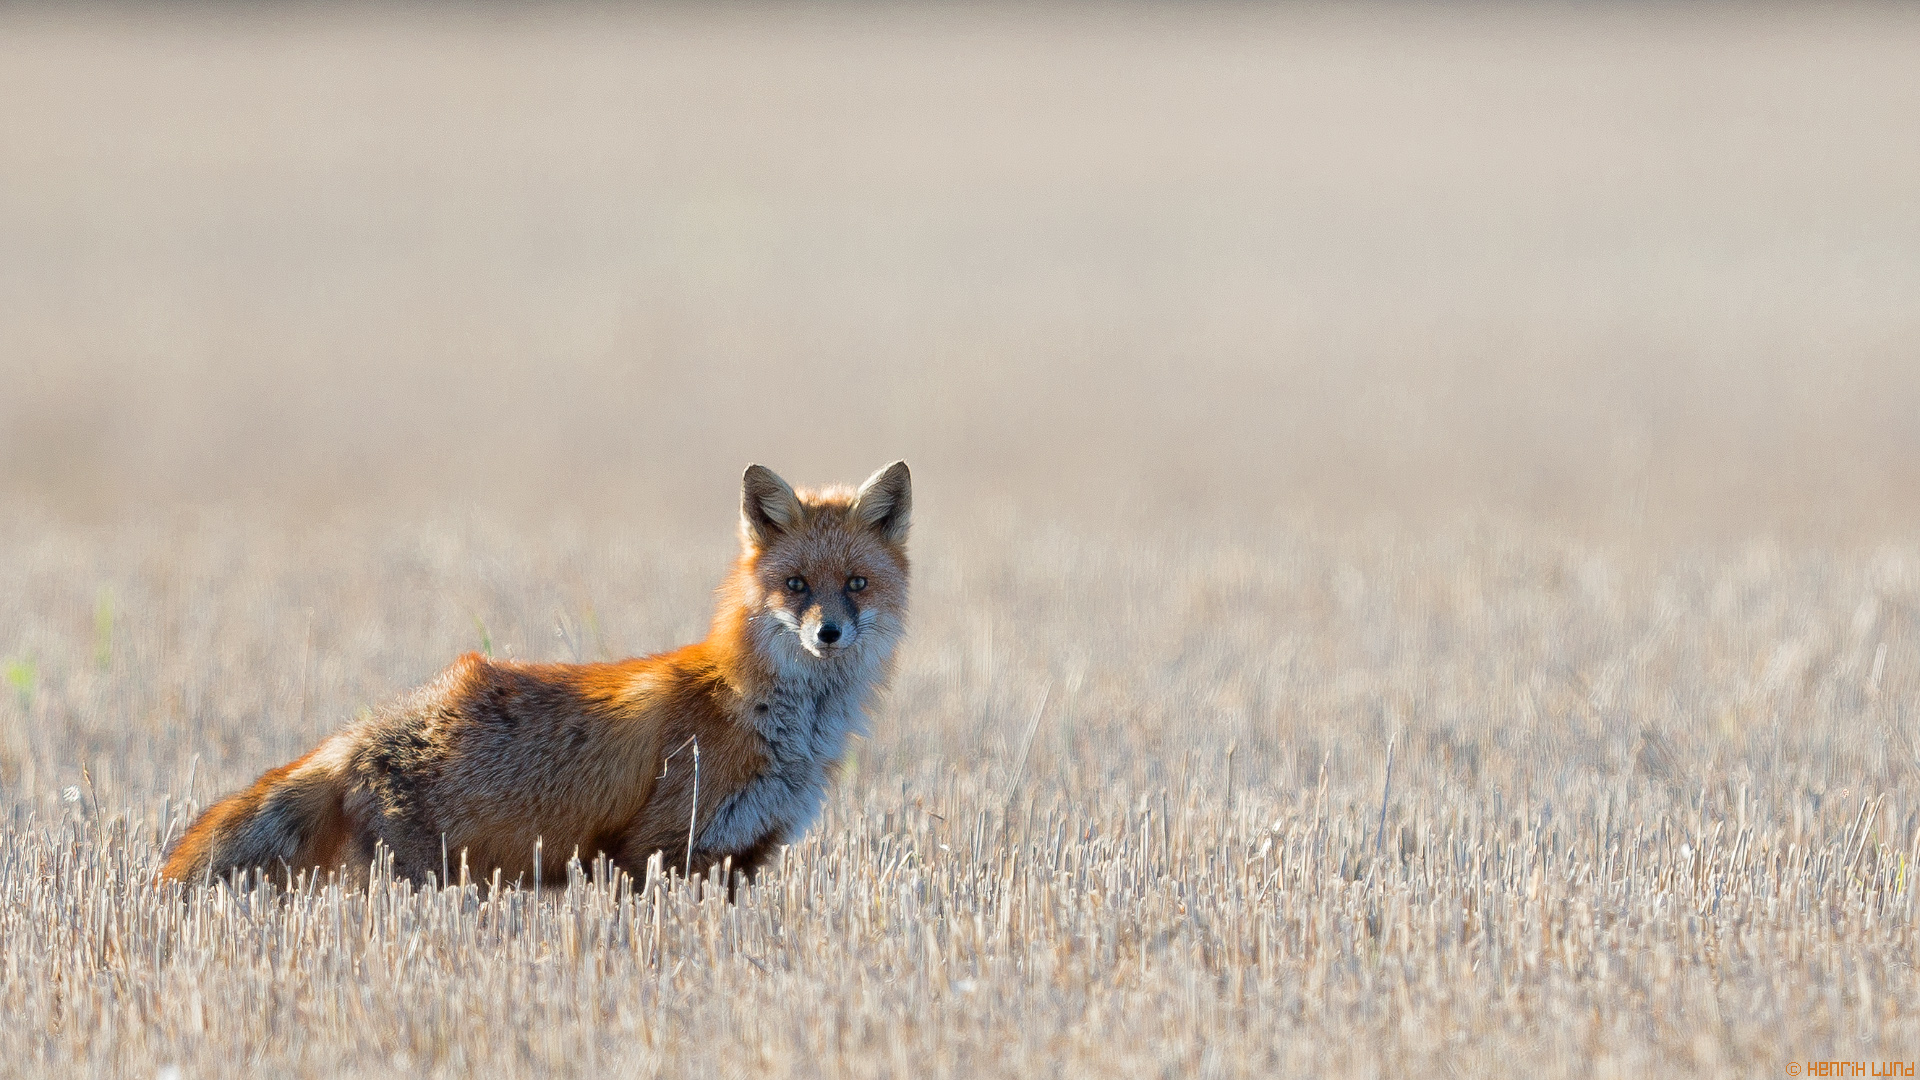 A red fox enjoying the last unprepared fields before the snow covers the ground.